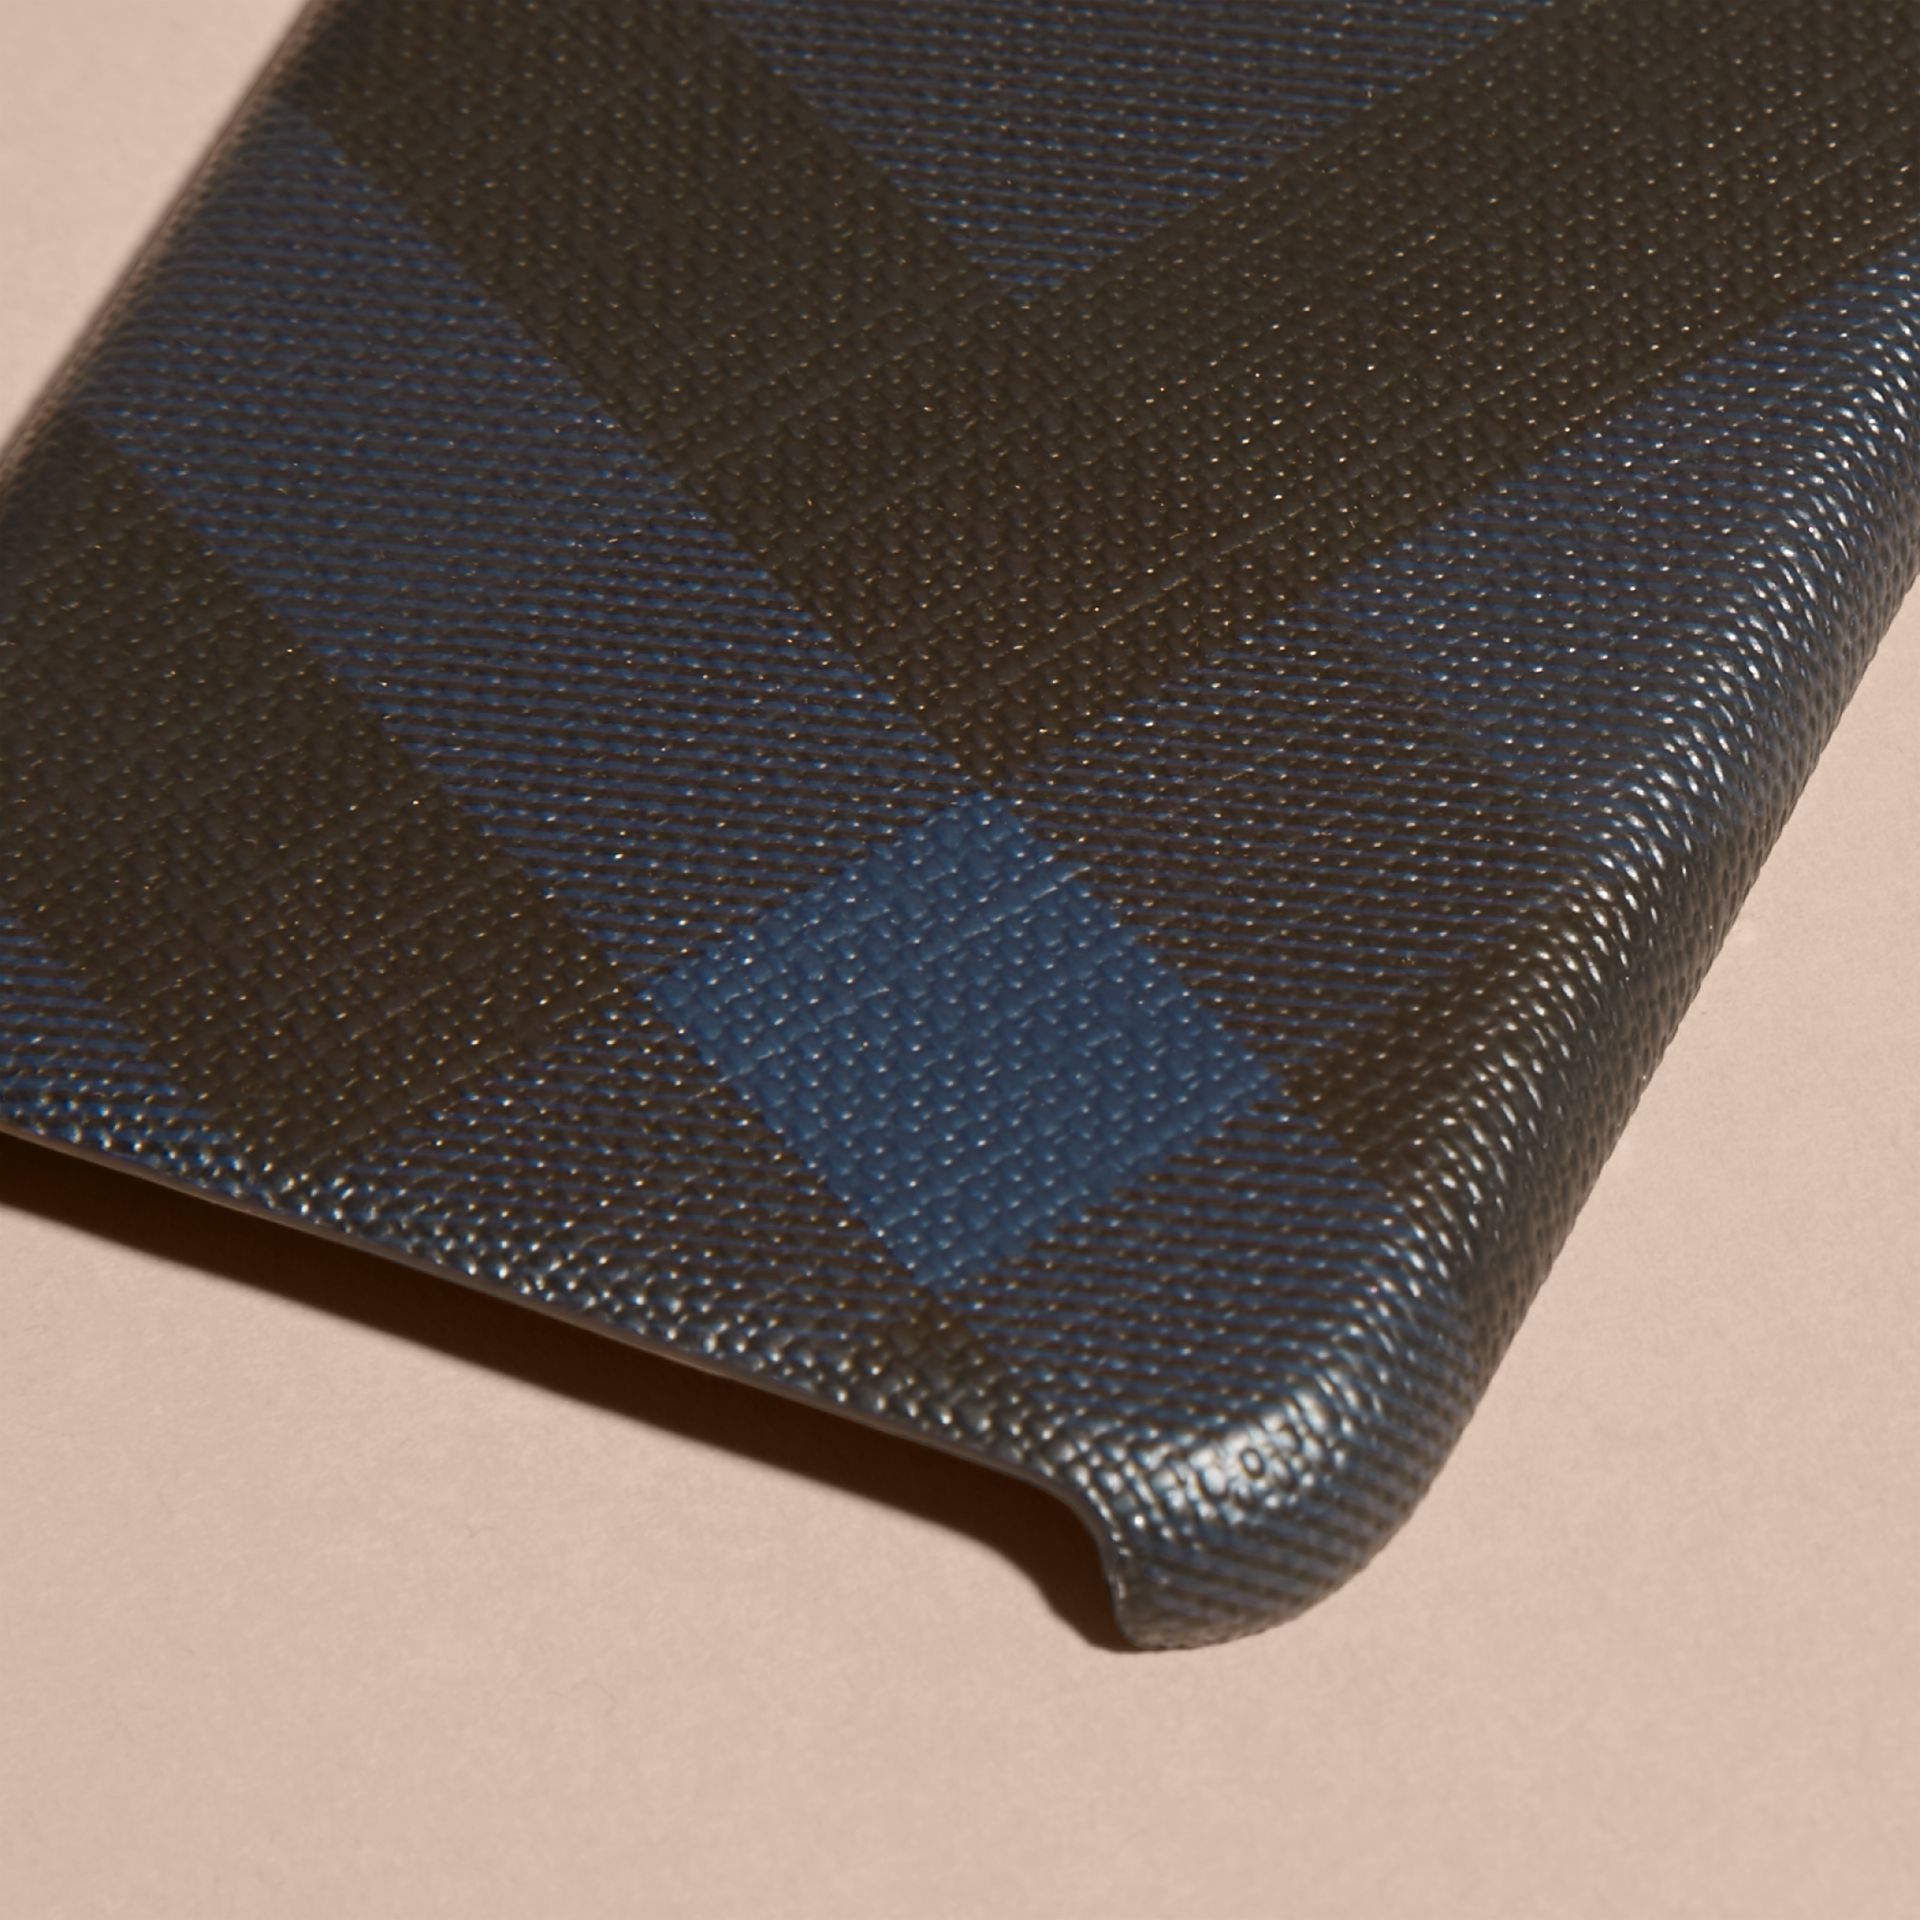 iPhone 7-Etui in London Check (Marineblau/schwarz) - Damen | Burberry - Galerie-Bild 2